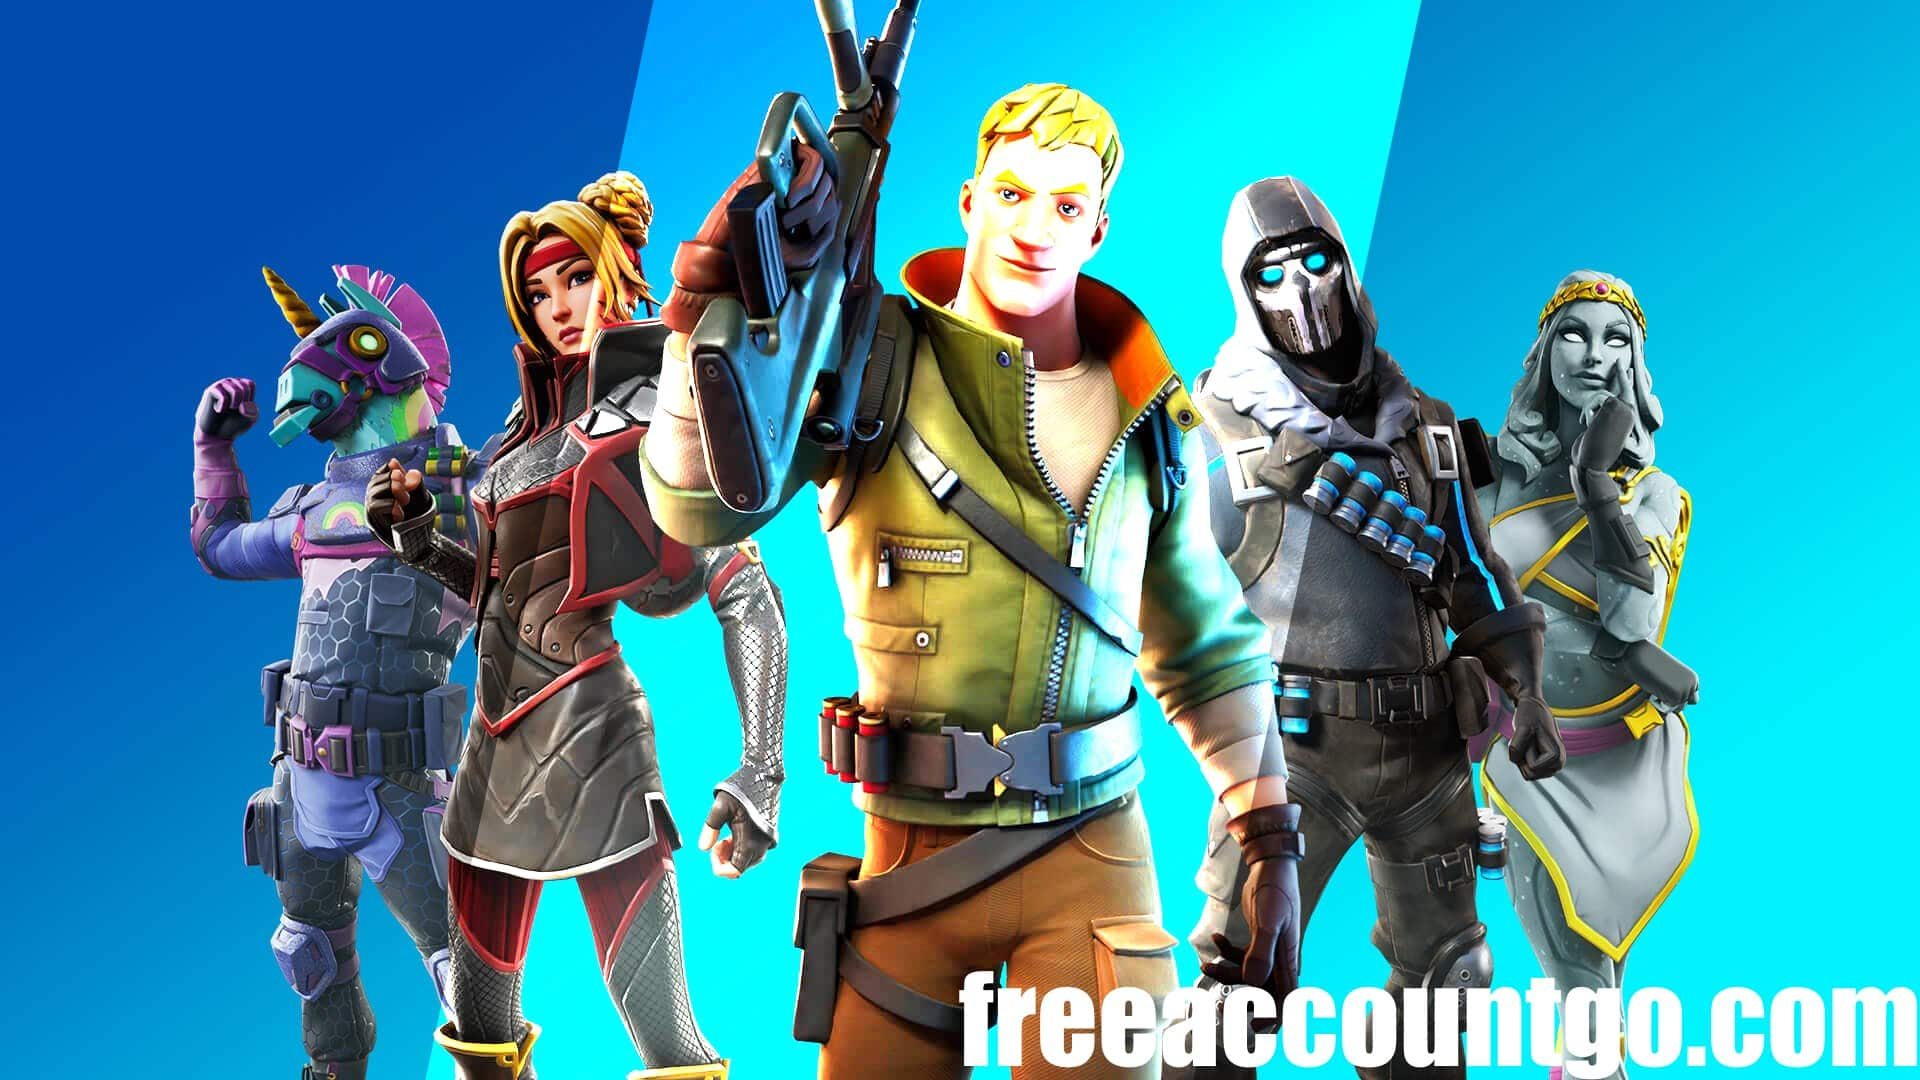 Free Fortnite Accounts 2021 | Login Email And Password Free